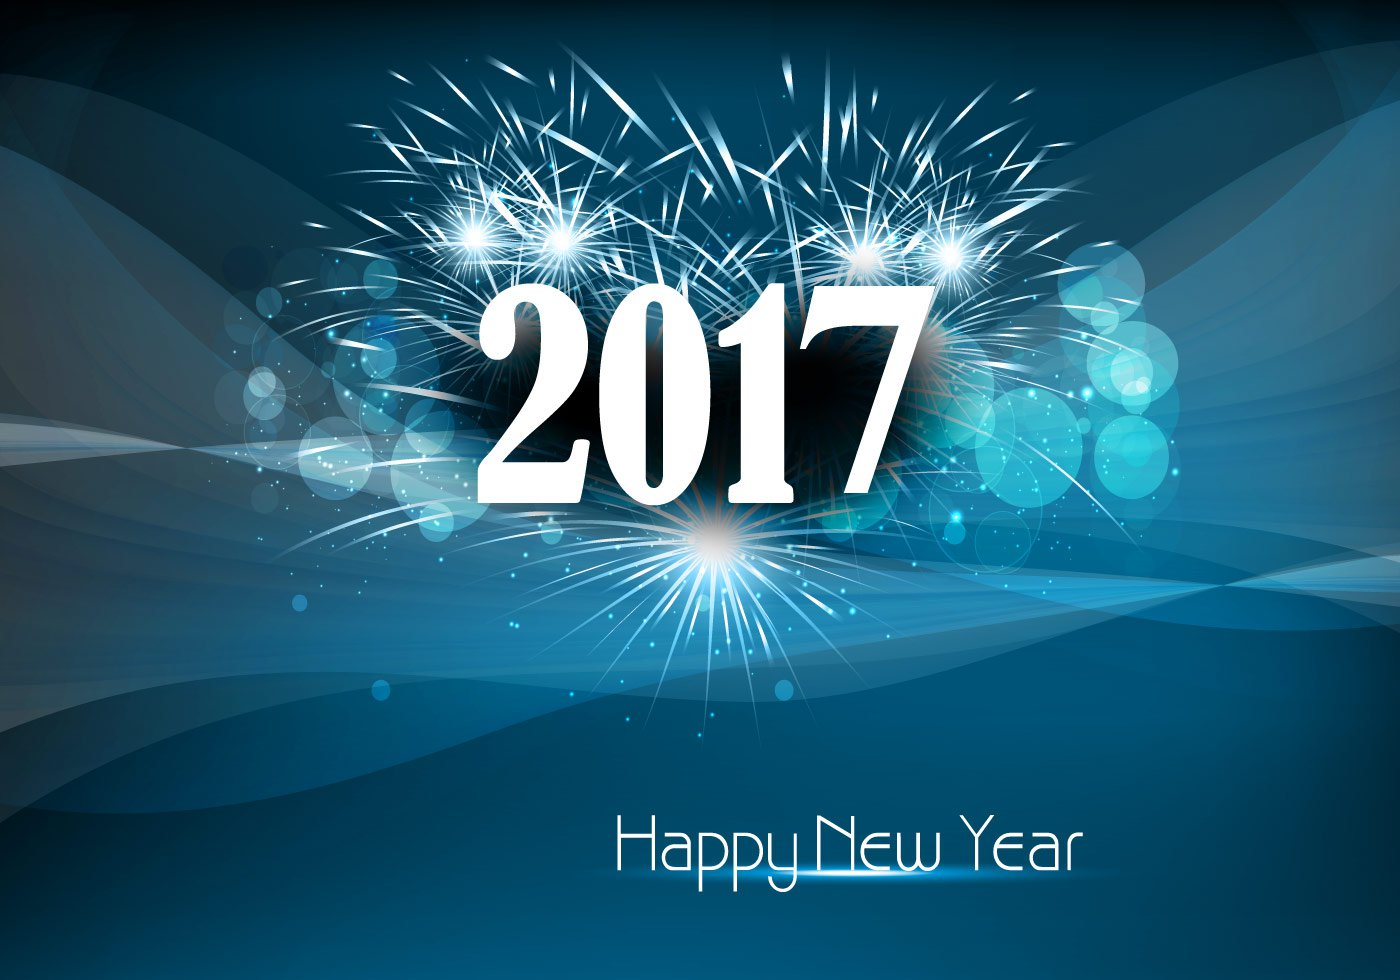 Happy New Year 2017 HD Wallpapers Free Download